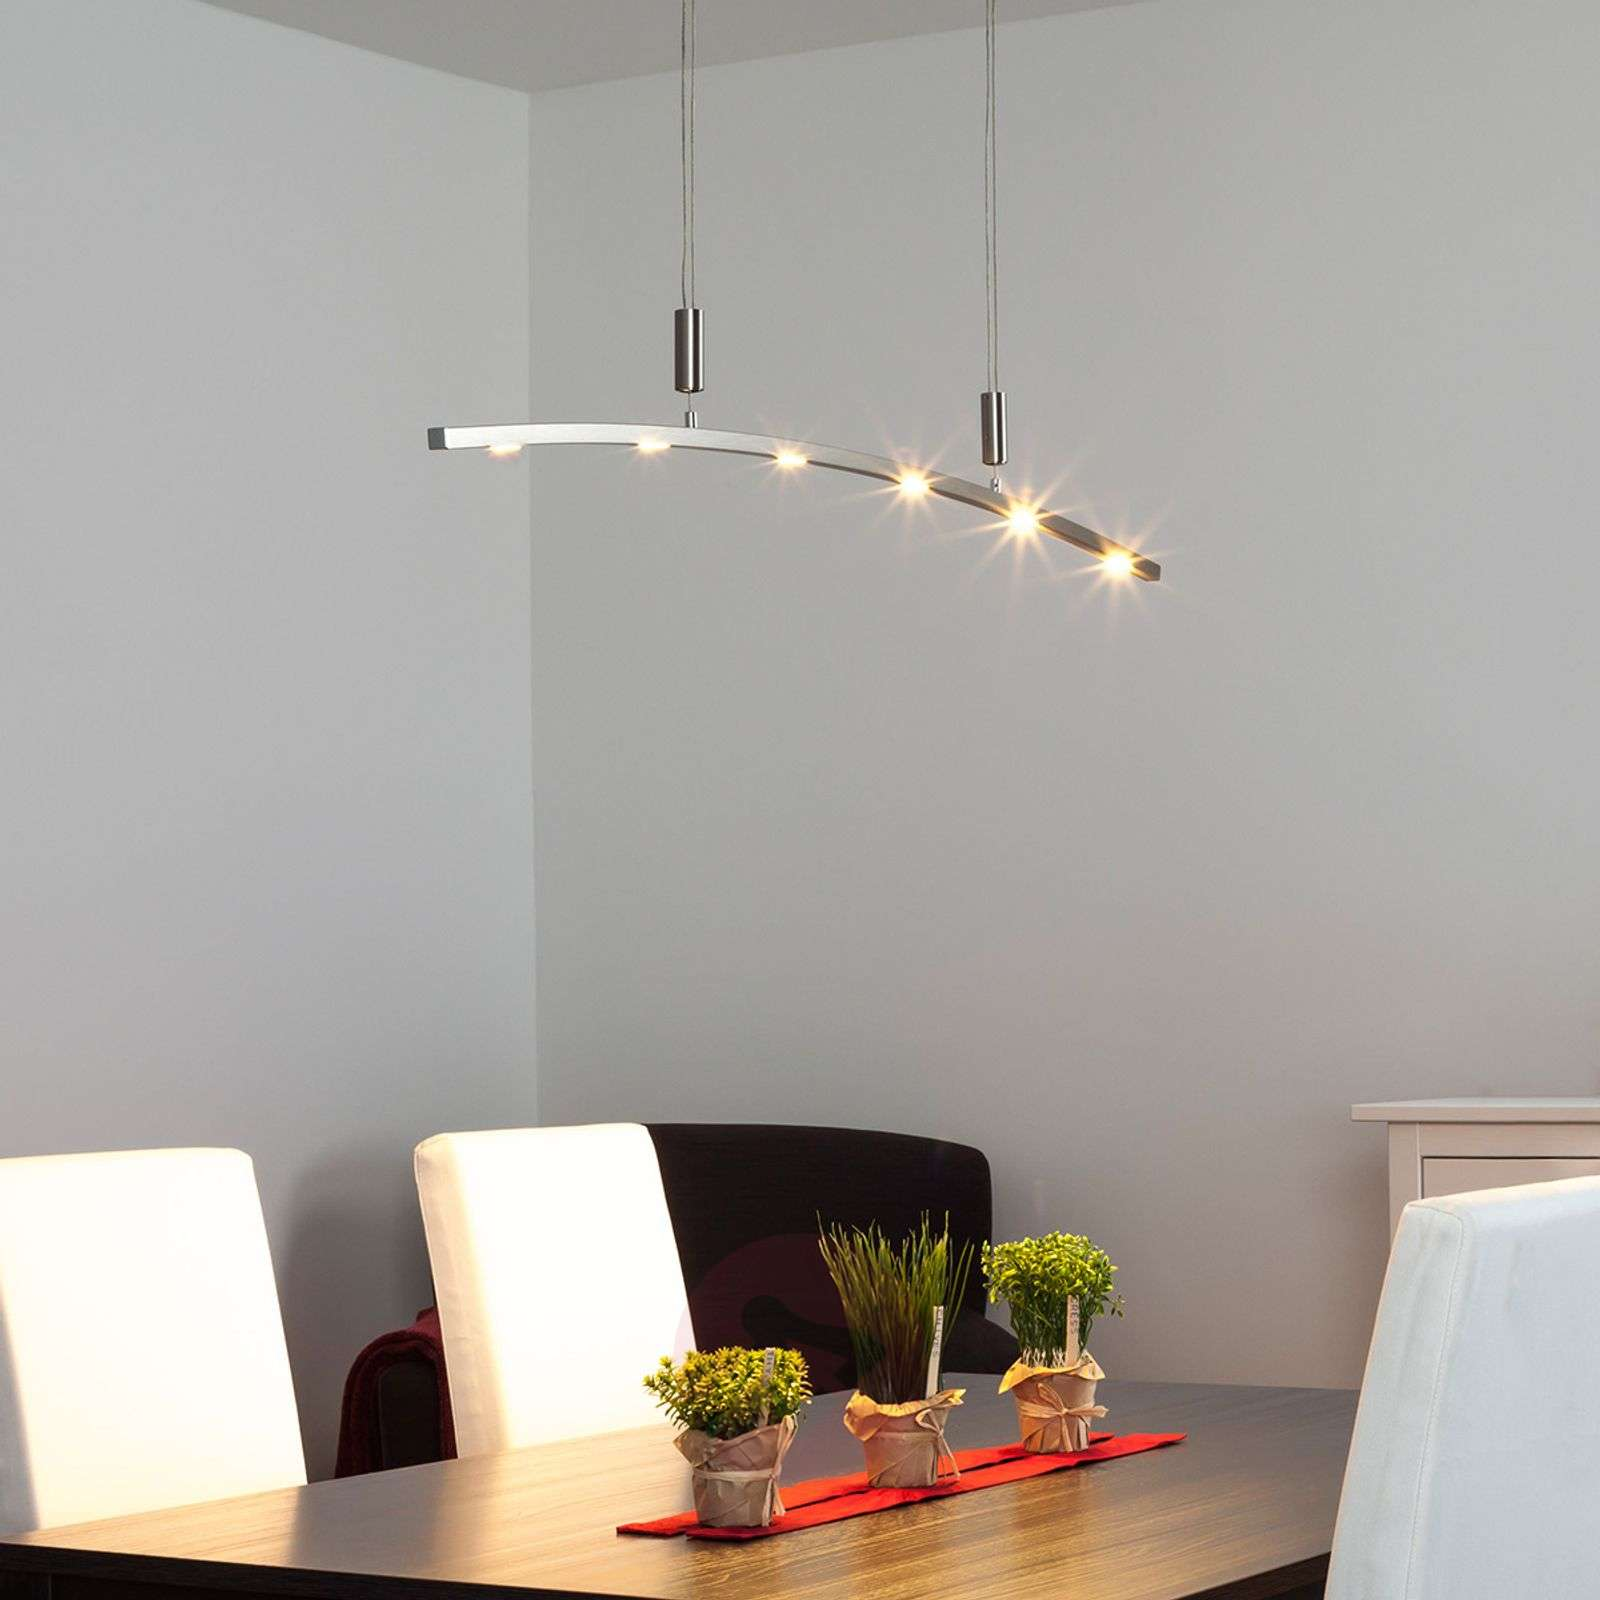 pagazzi ceiling lighting led fare pendant light